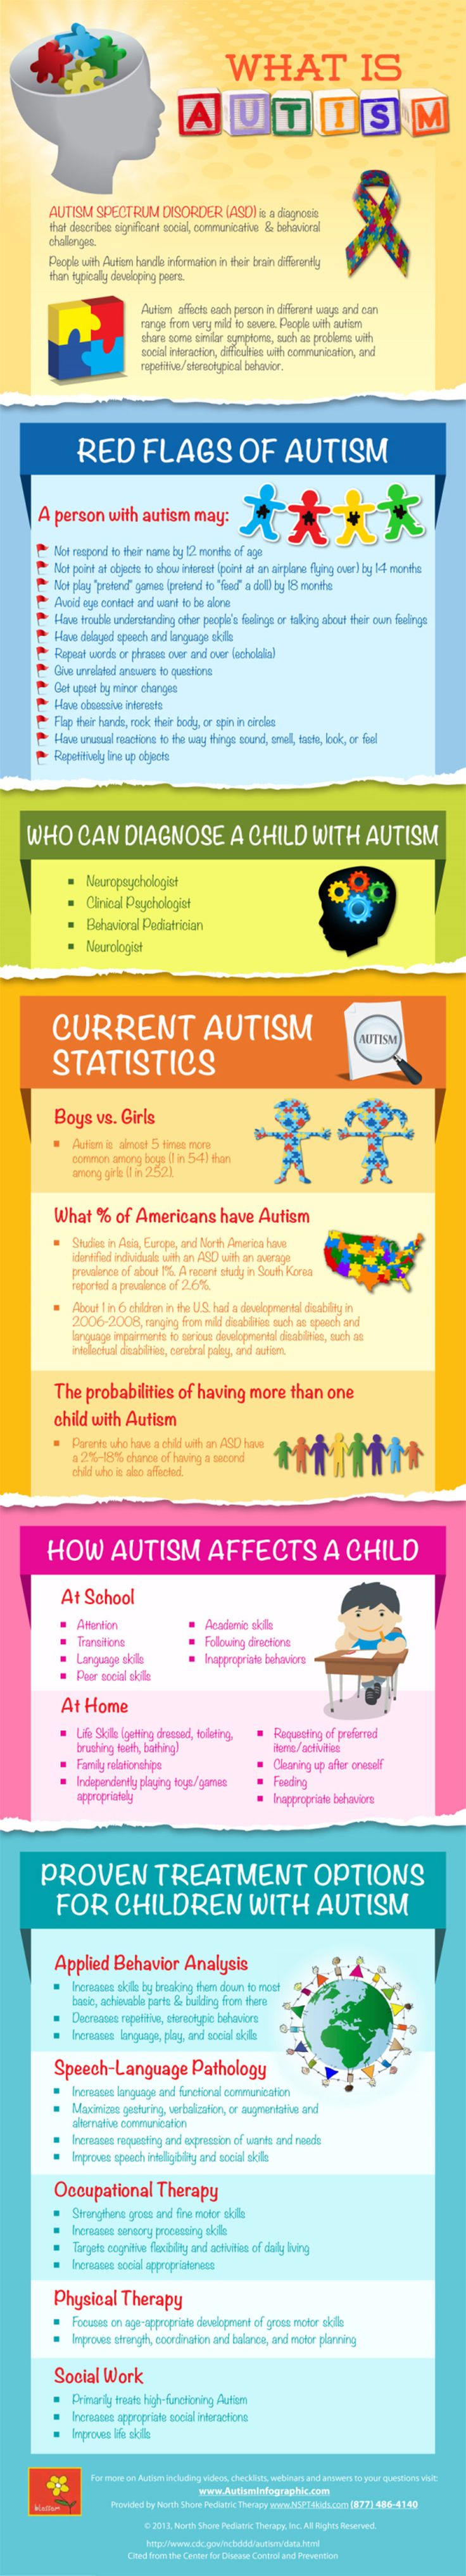 What Is Autism Infographic #brain #autism #health